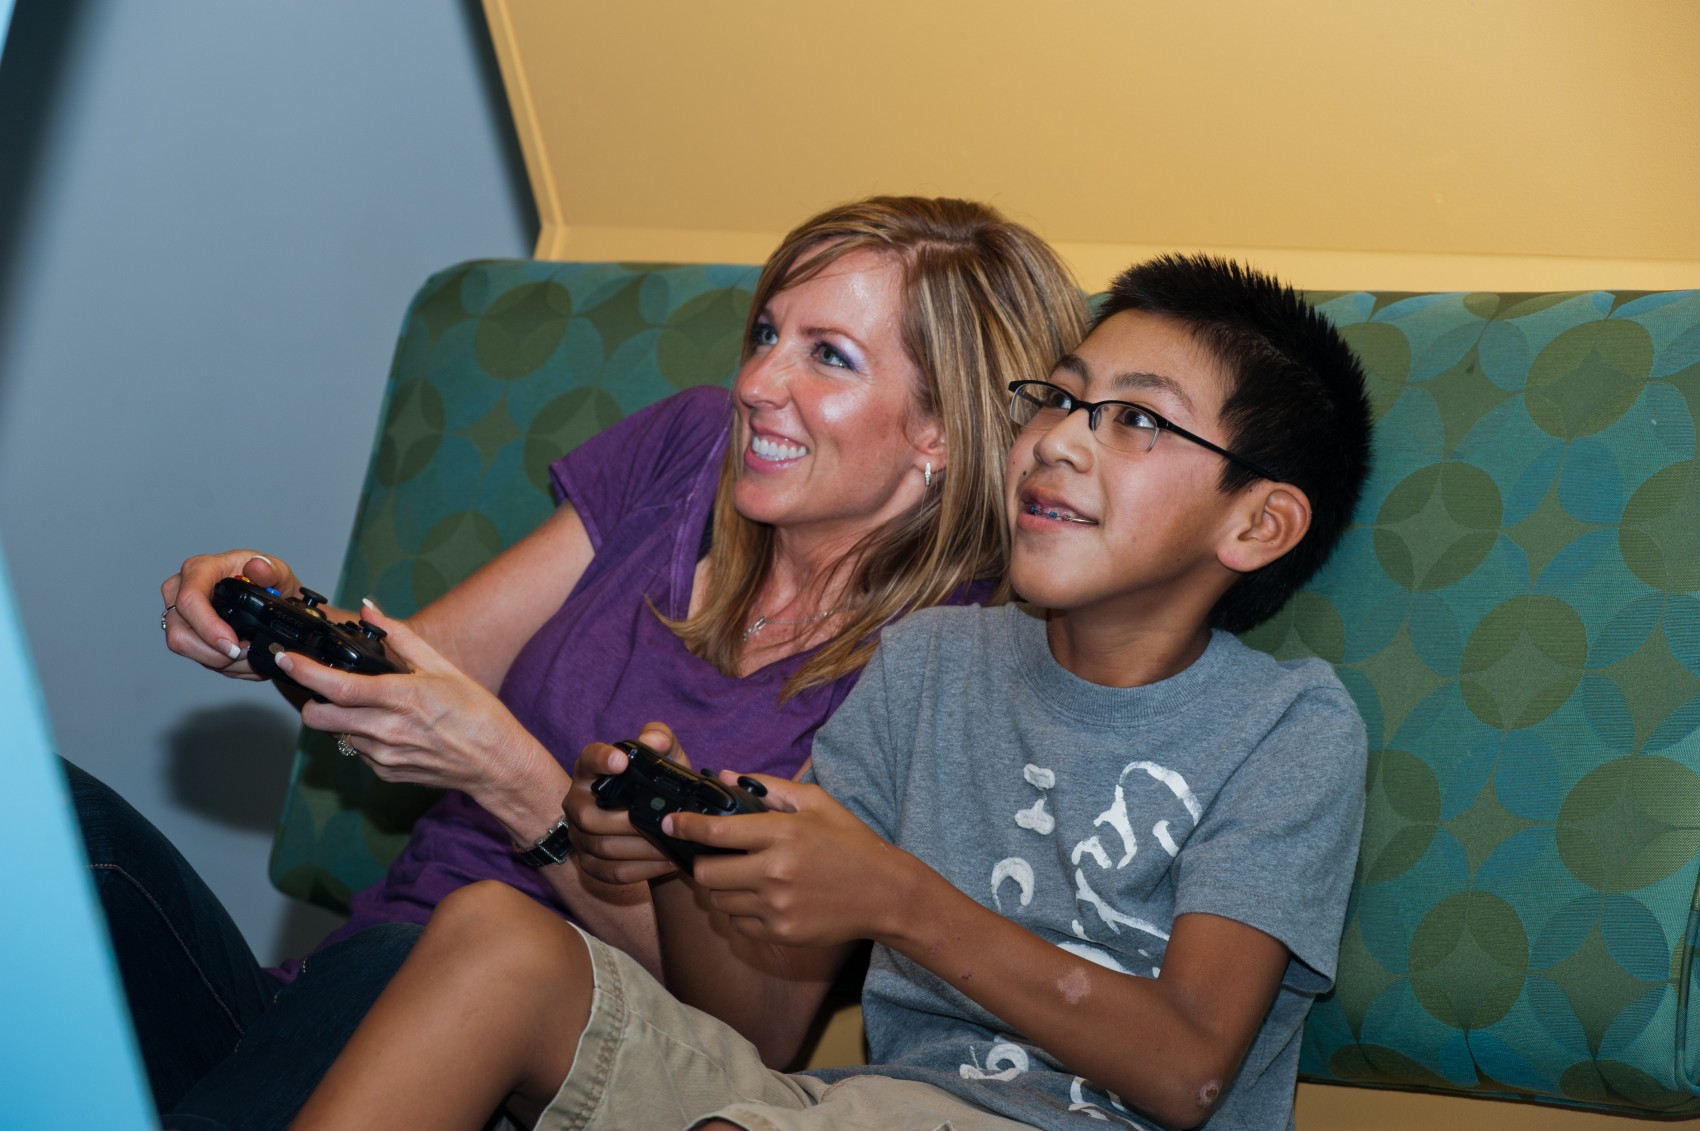 Boy with mom in game room